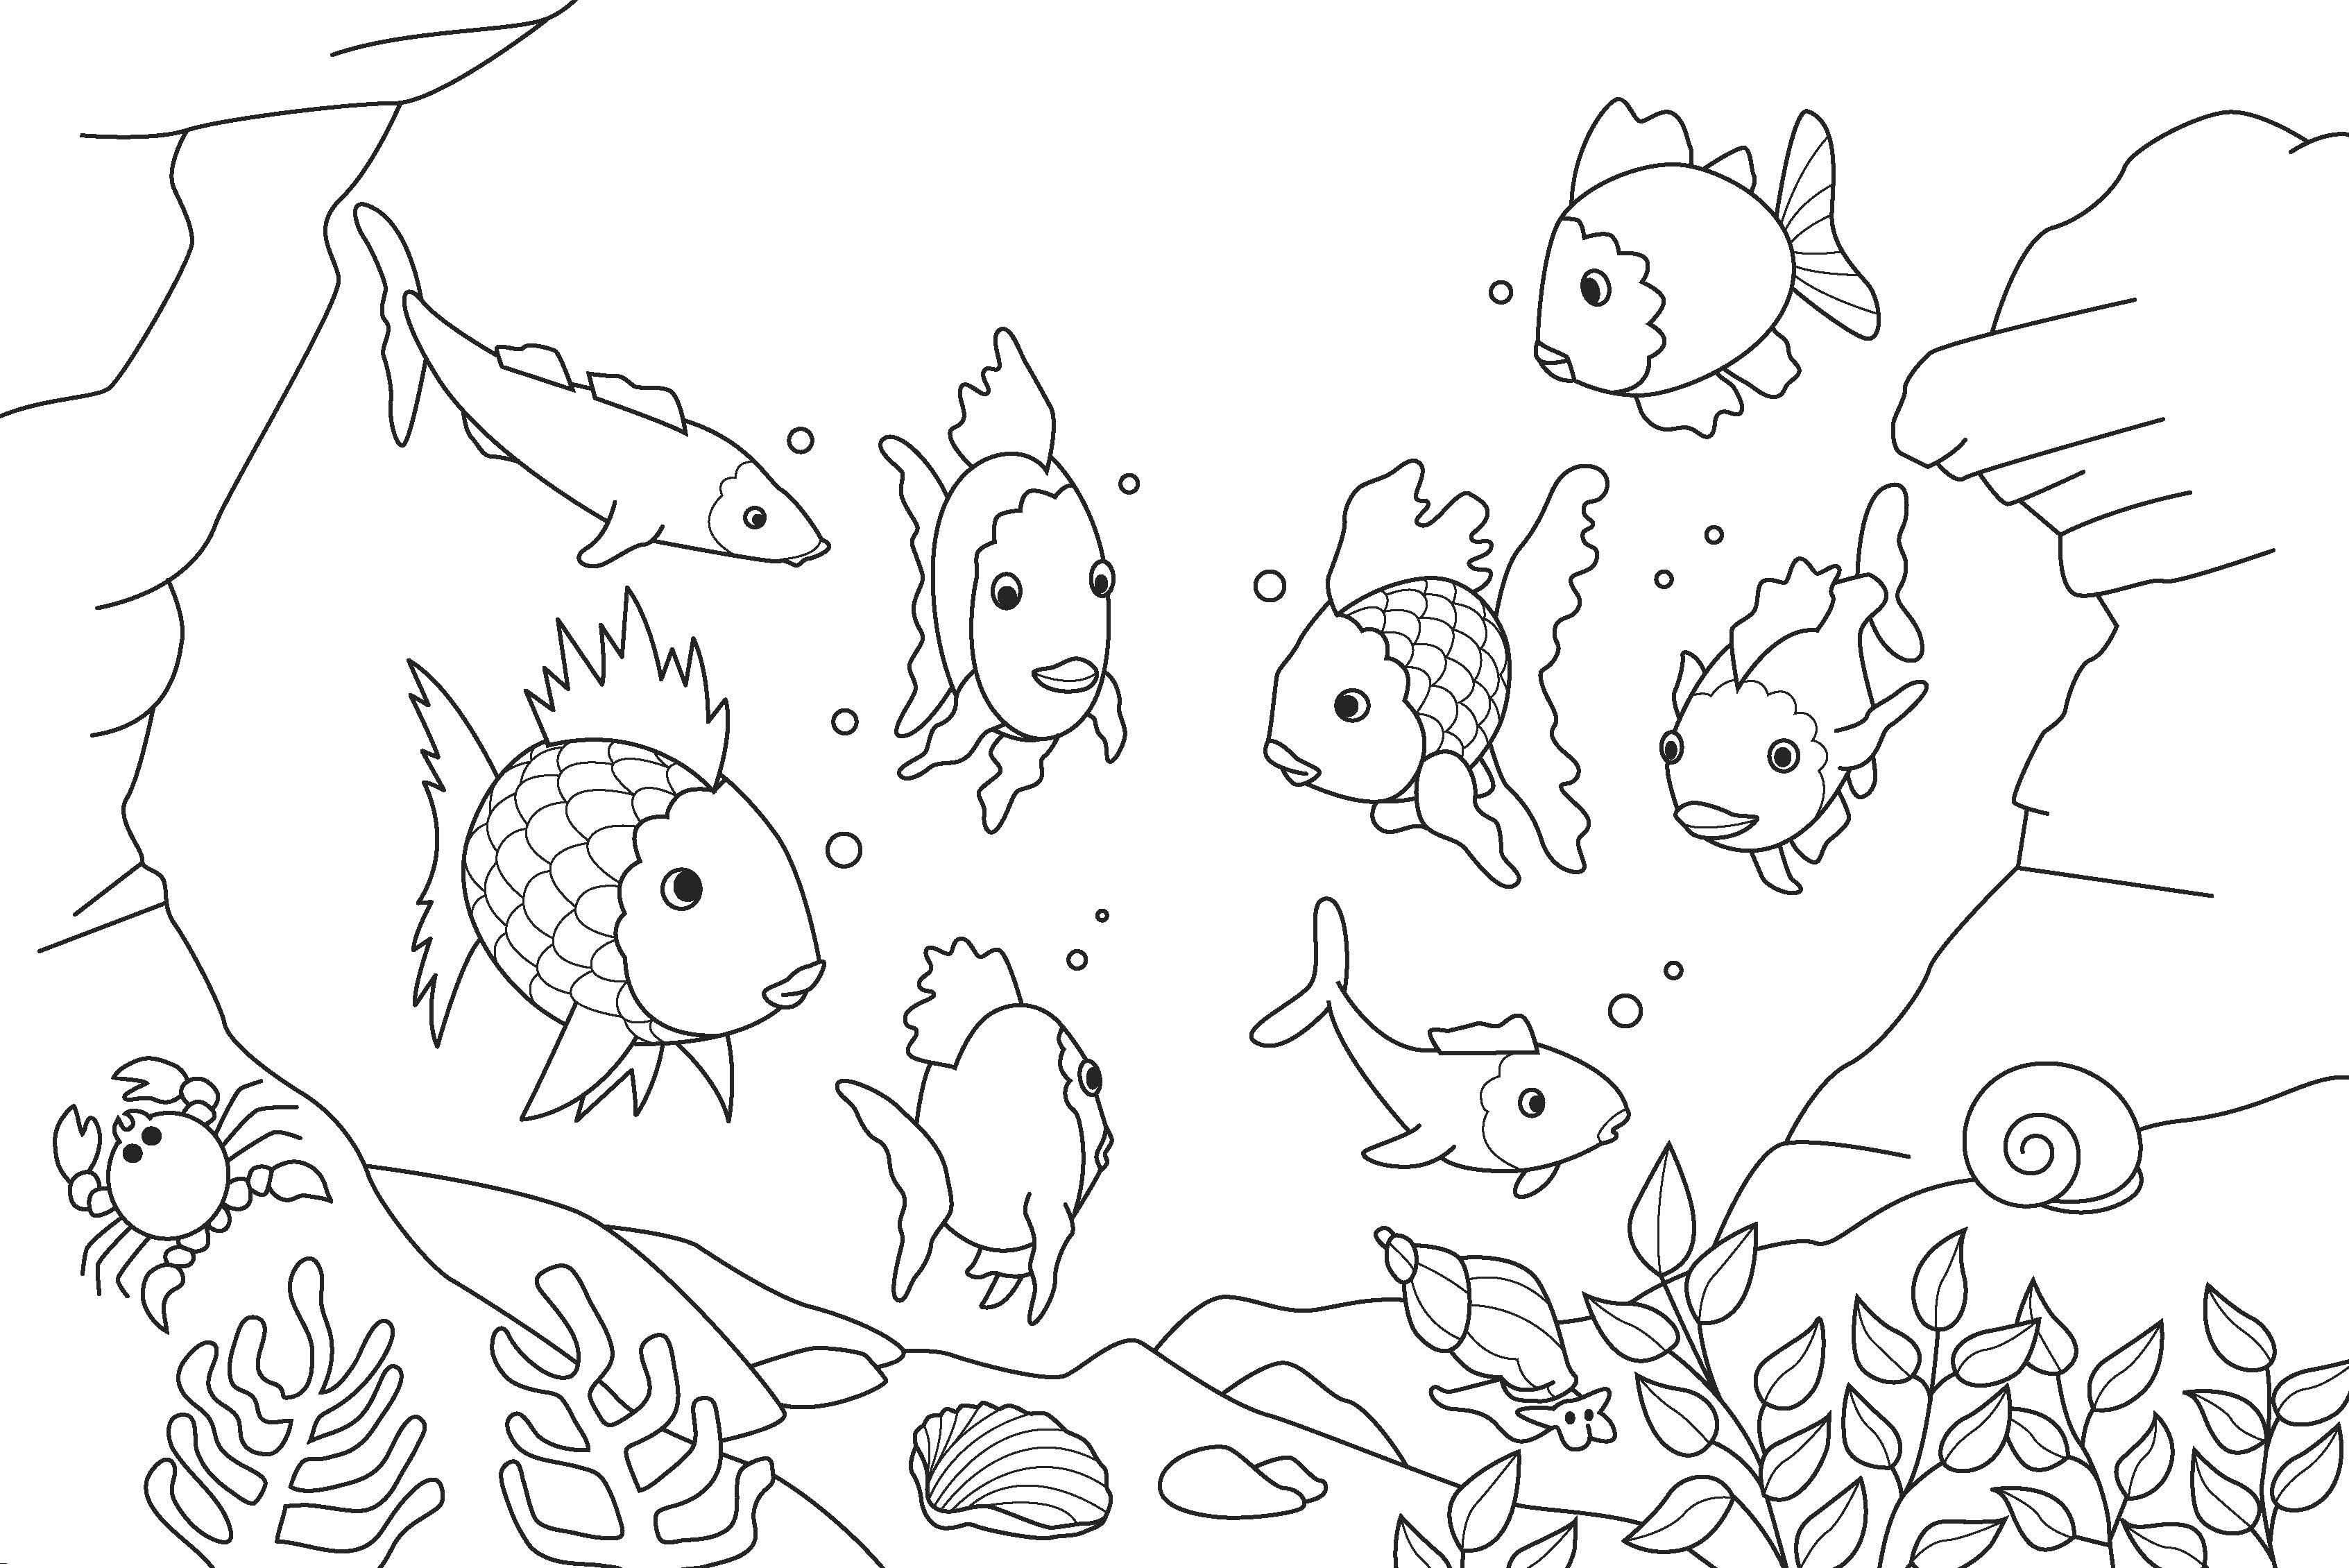 50 Free Coloring Pages For Kids